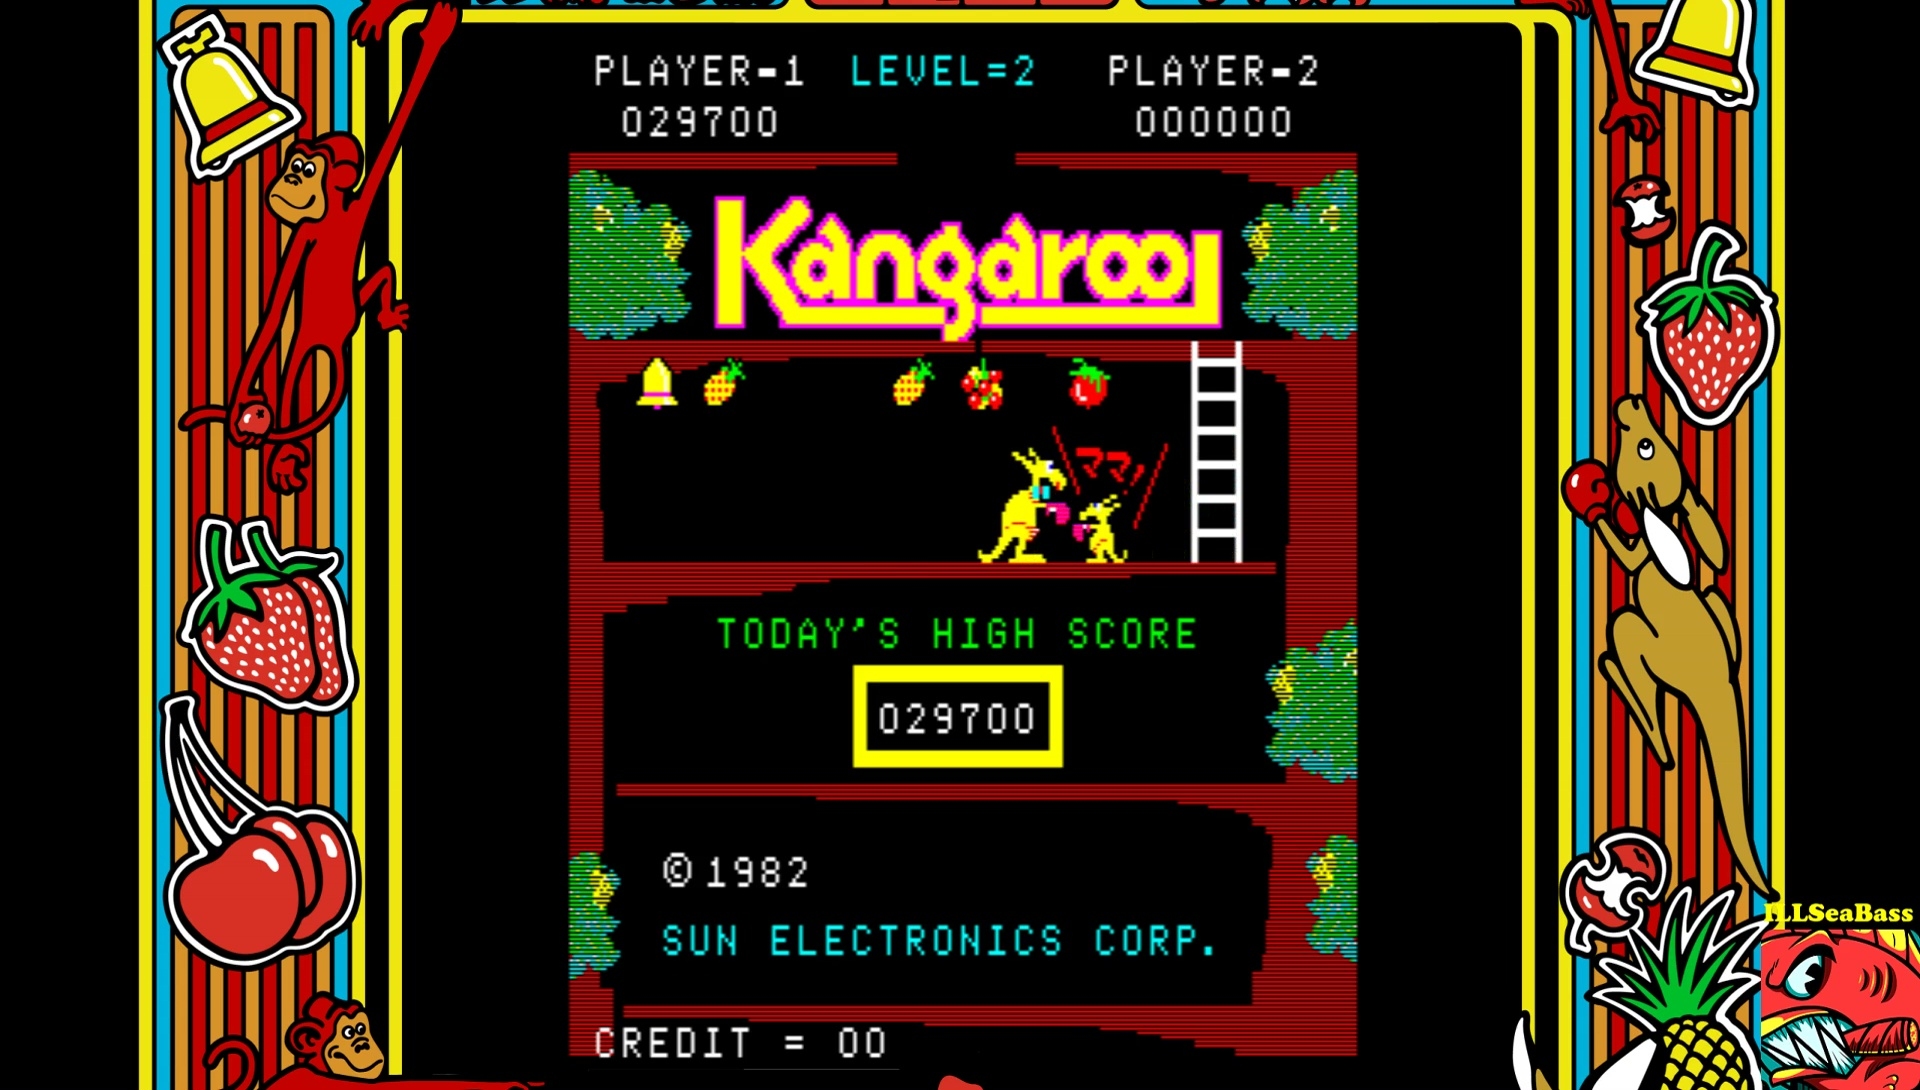 ILLSeaBass: Kangaroo (Arcade Emulated / M.A.M.E.) 29,700 points on 2017-03-15 22:13:11